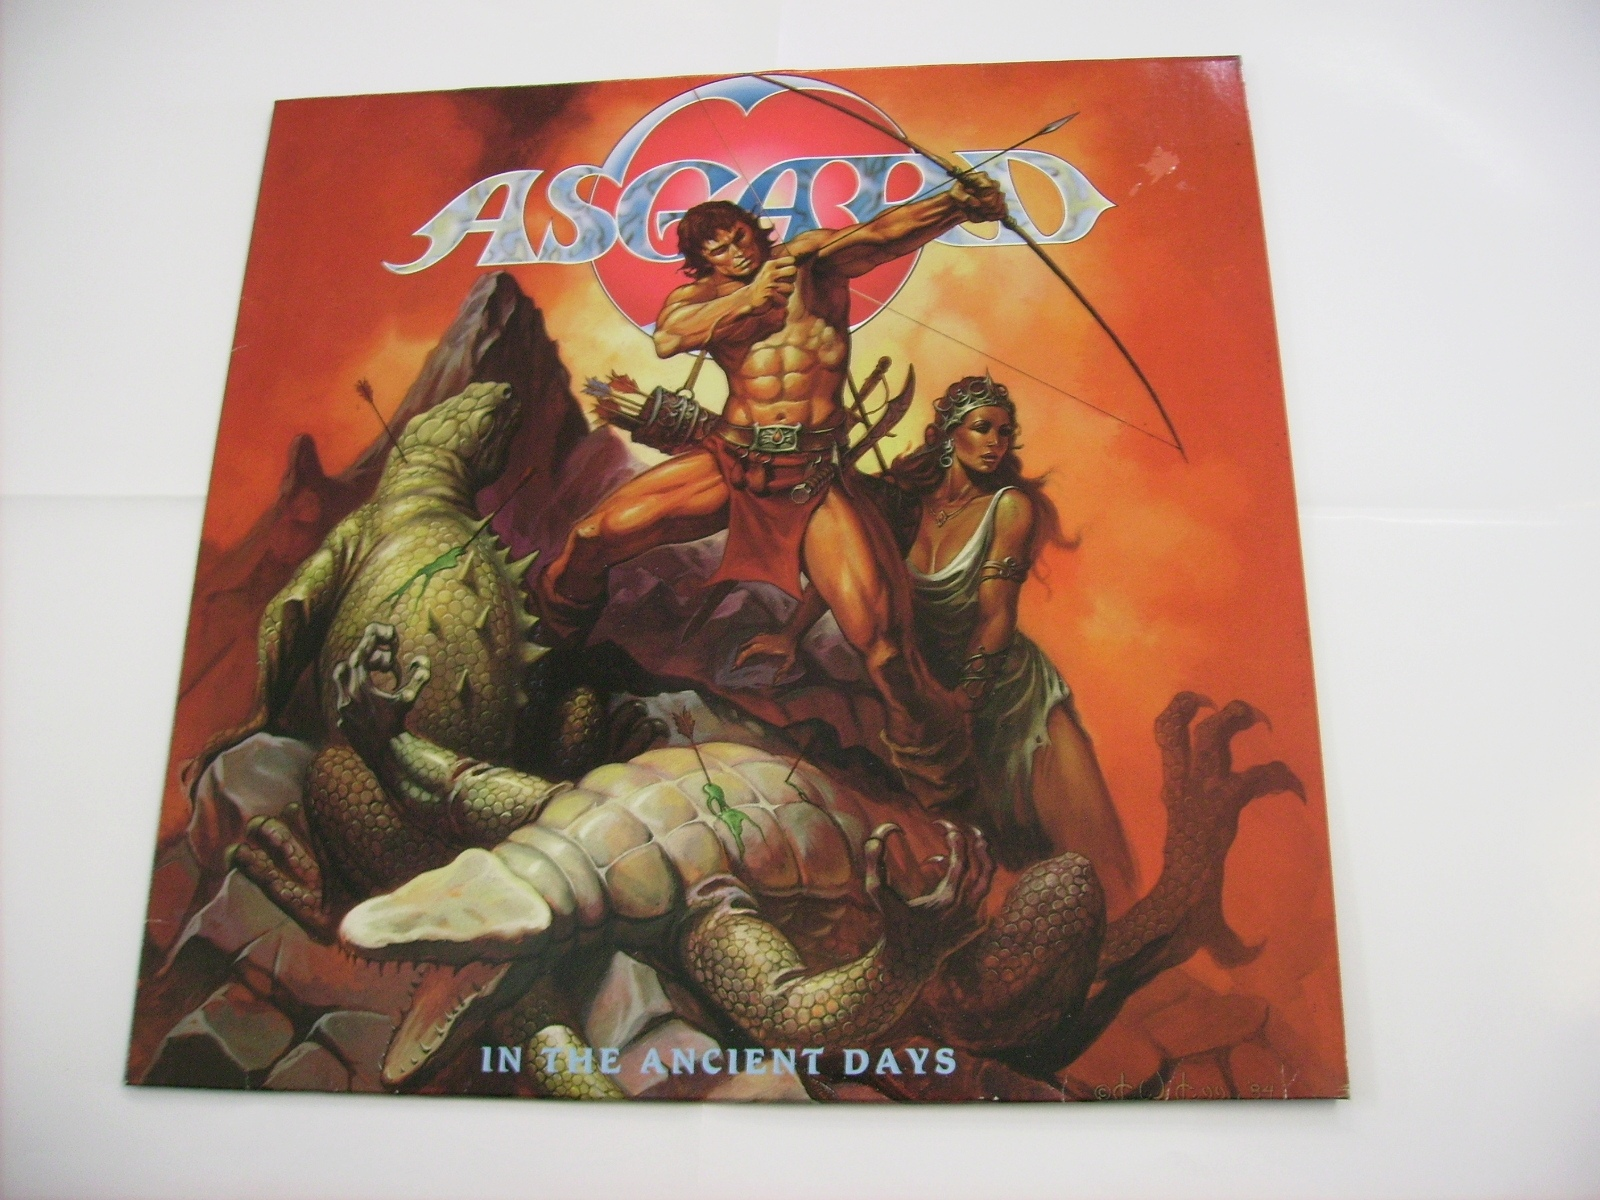 ASGARD In the Ancient Days (1986) HEAVY METAL Allemagne Asg_0010